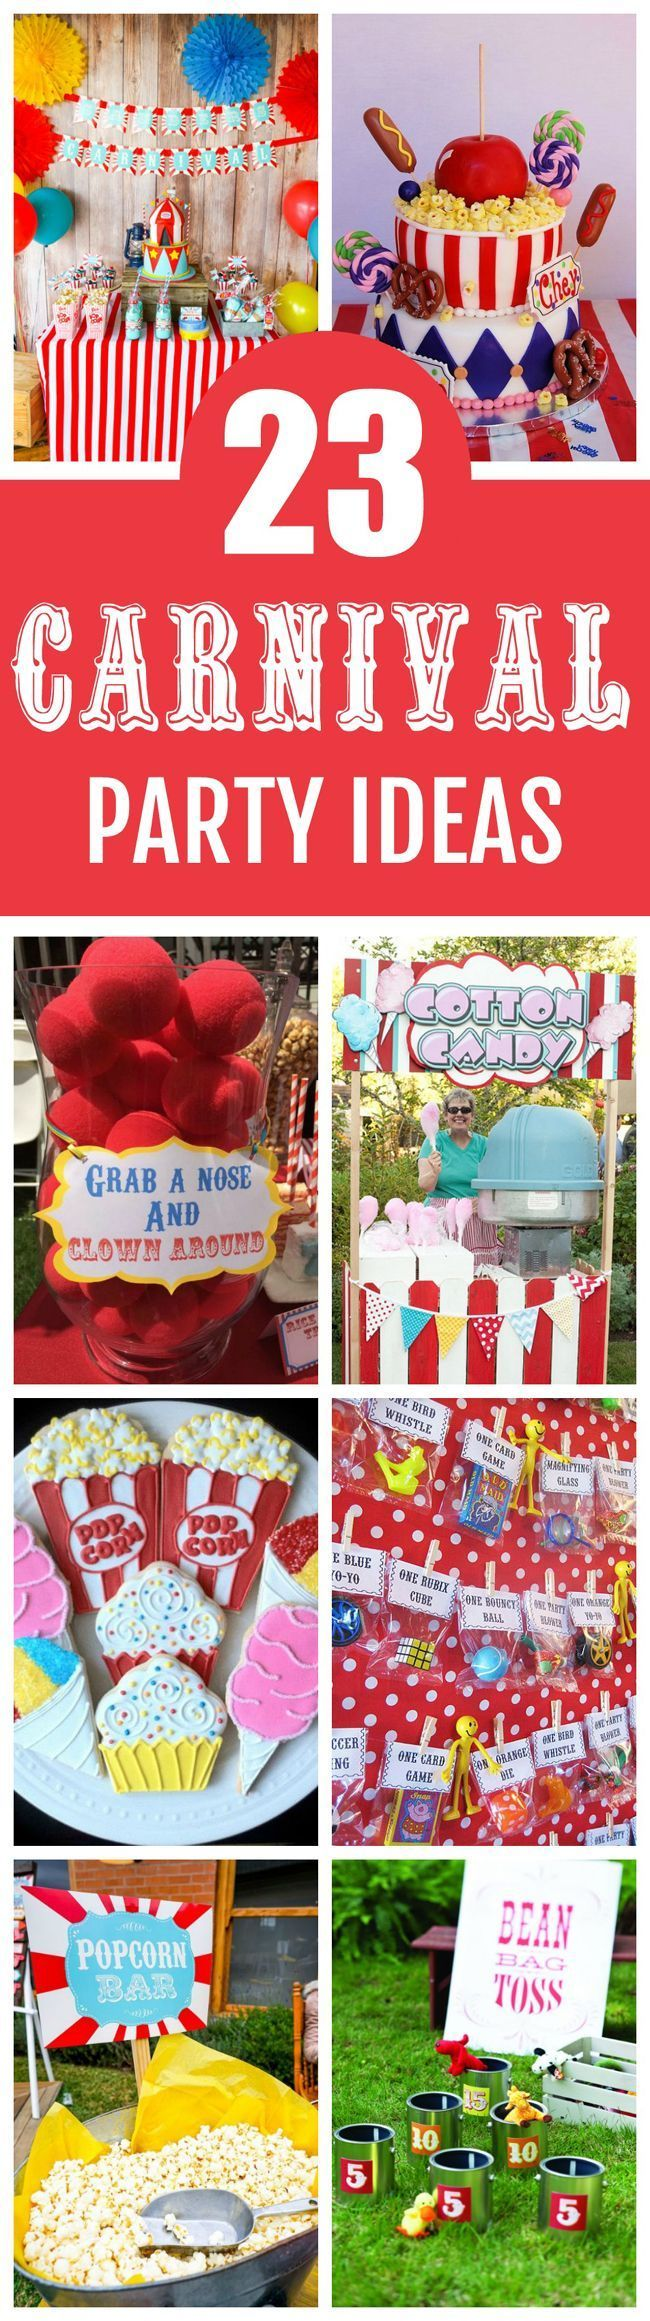 23 Incredible Carnival Party Ideas featured on Pretty My Party